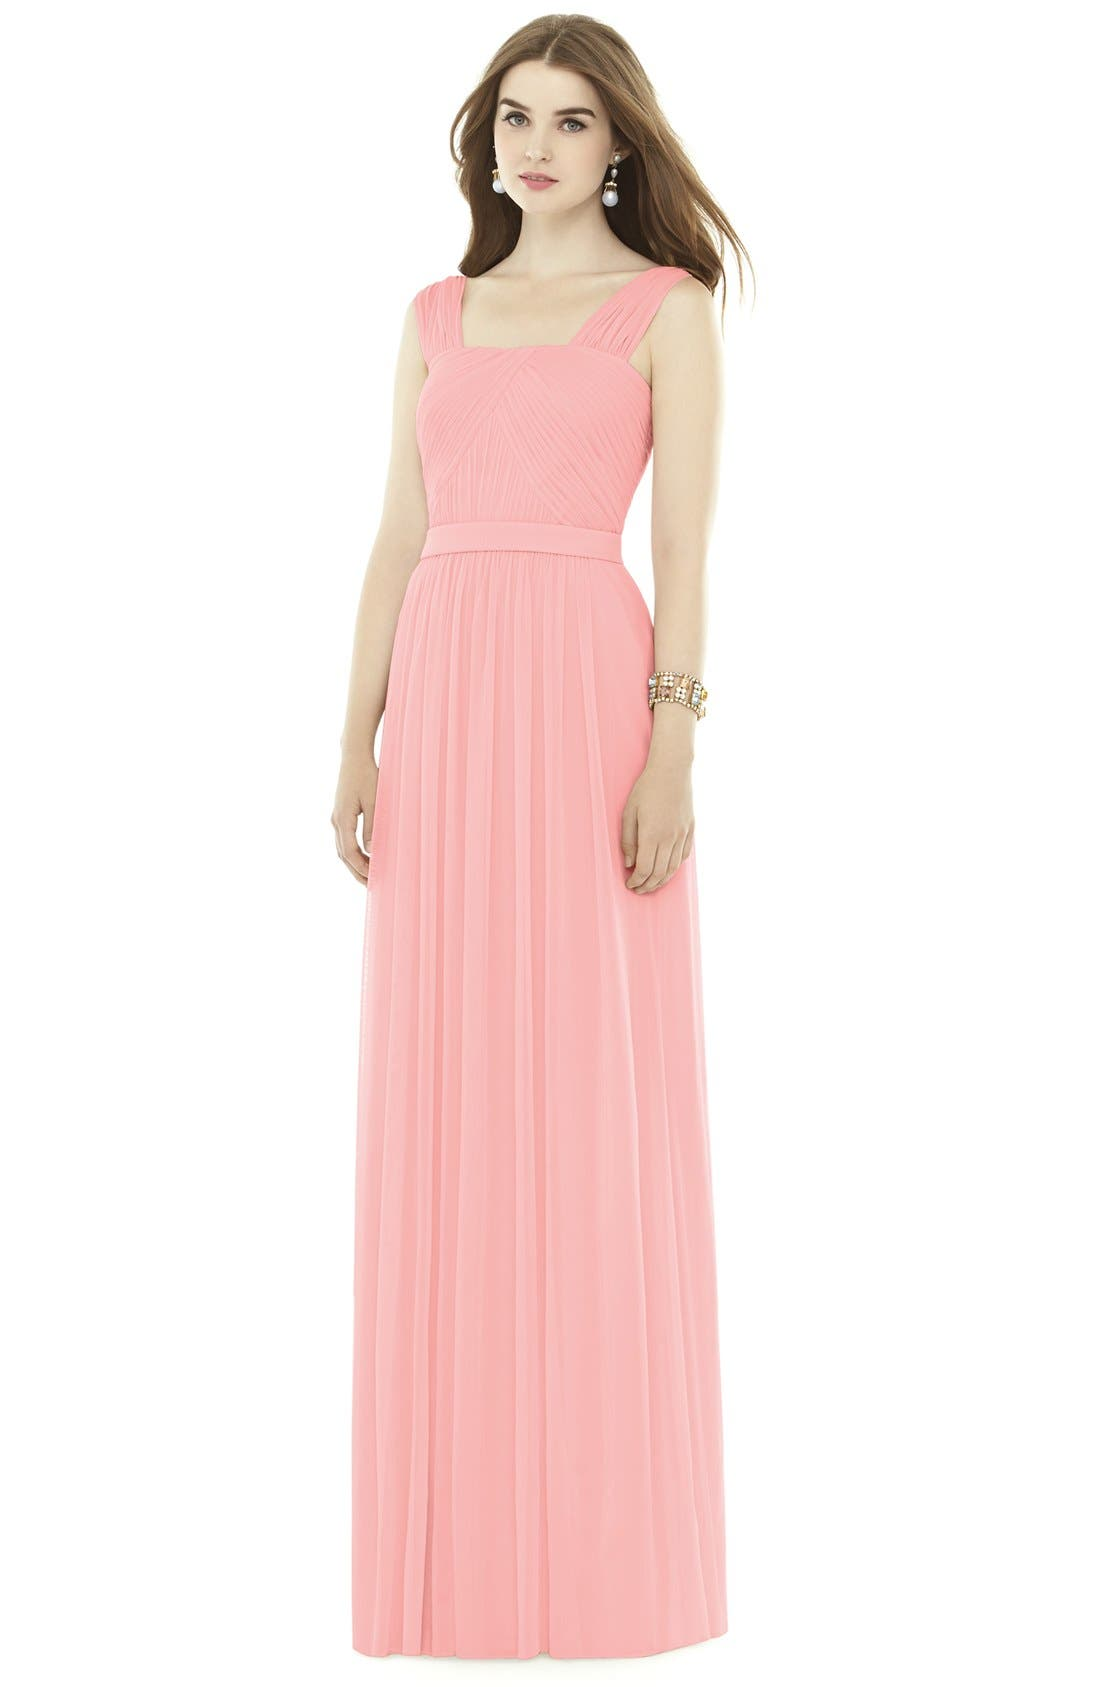 Main Image - Alfred Sung Pleat Chiffon Knit A-Line Gown with Belt